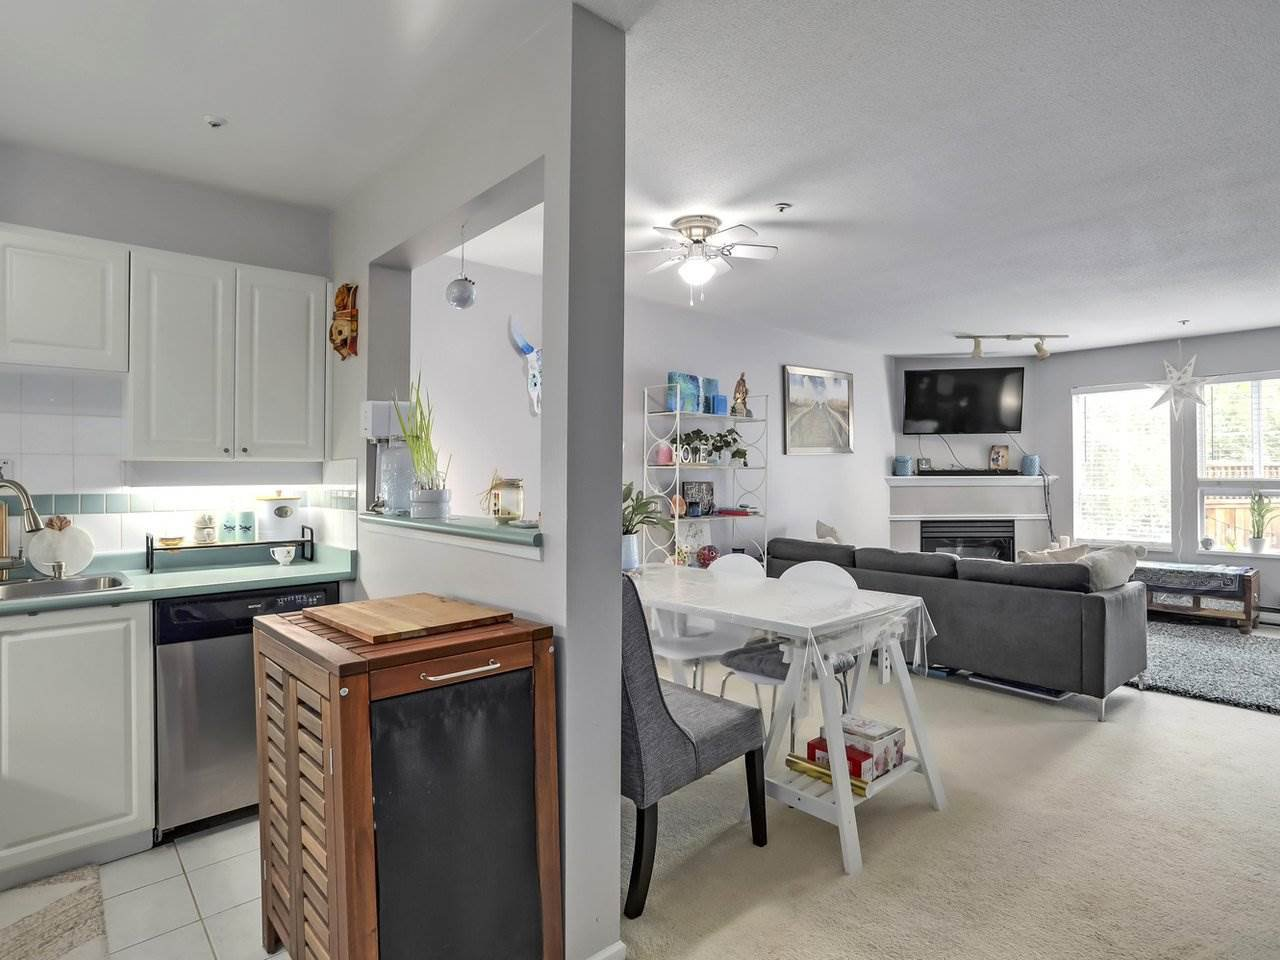 Photo 10: Photos: 107 295 SCHOOLHOUSE Street in Coquitlam: Maillardville Condo for sale : MLS®# R2286753